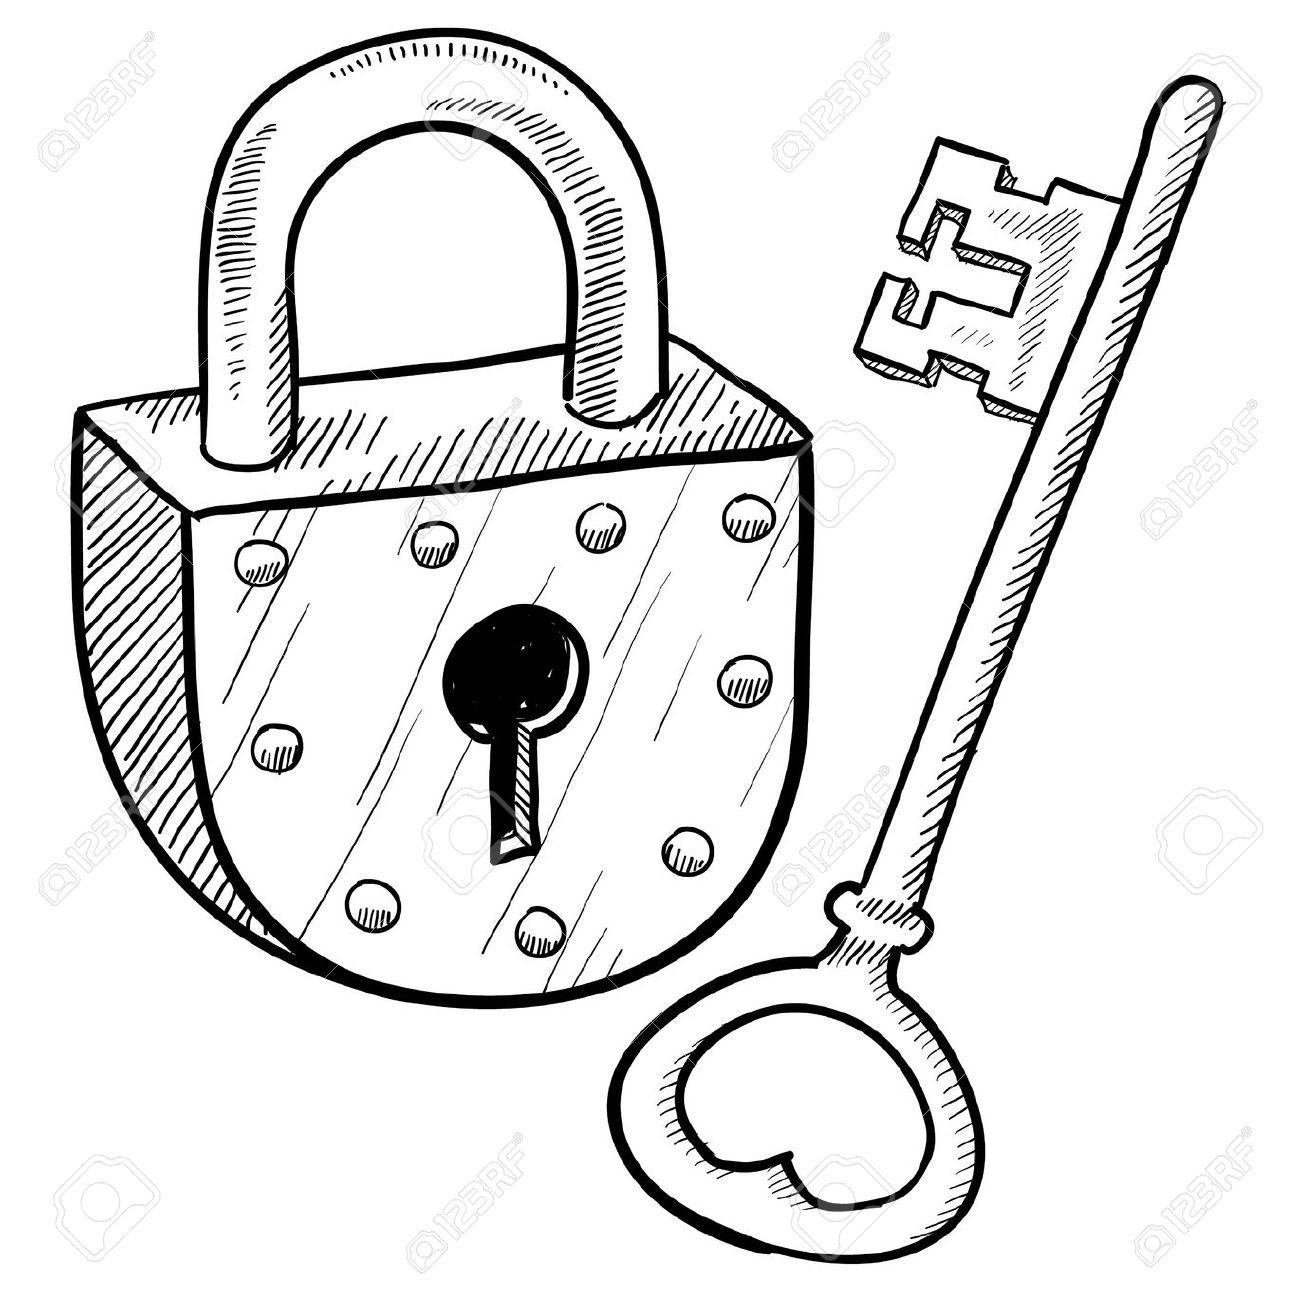 Lock and key clipart black and white picture black and white library Padlock Stock Illustrations, Cliparts And Royalty Free Padlock ... picture black and white library